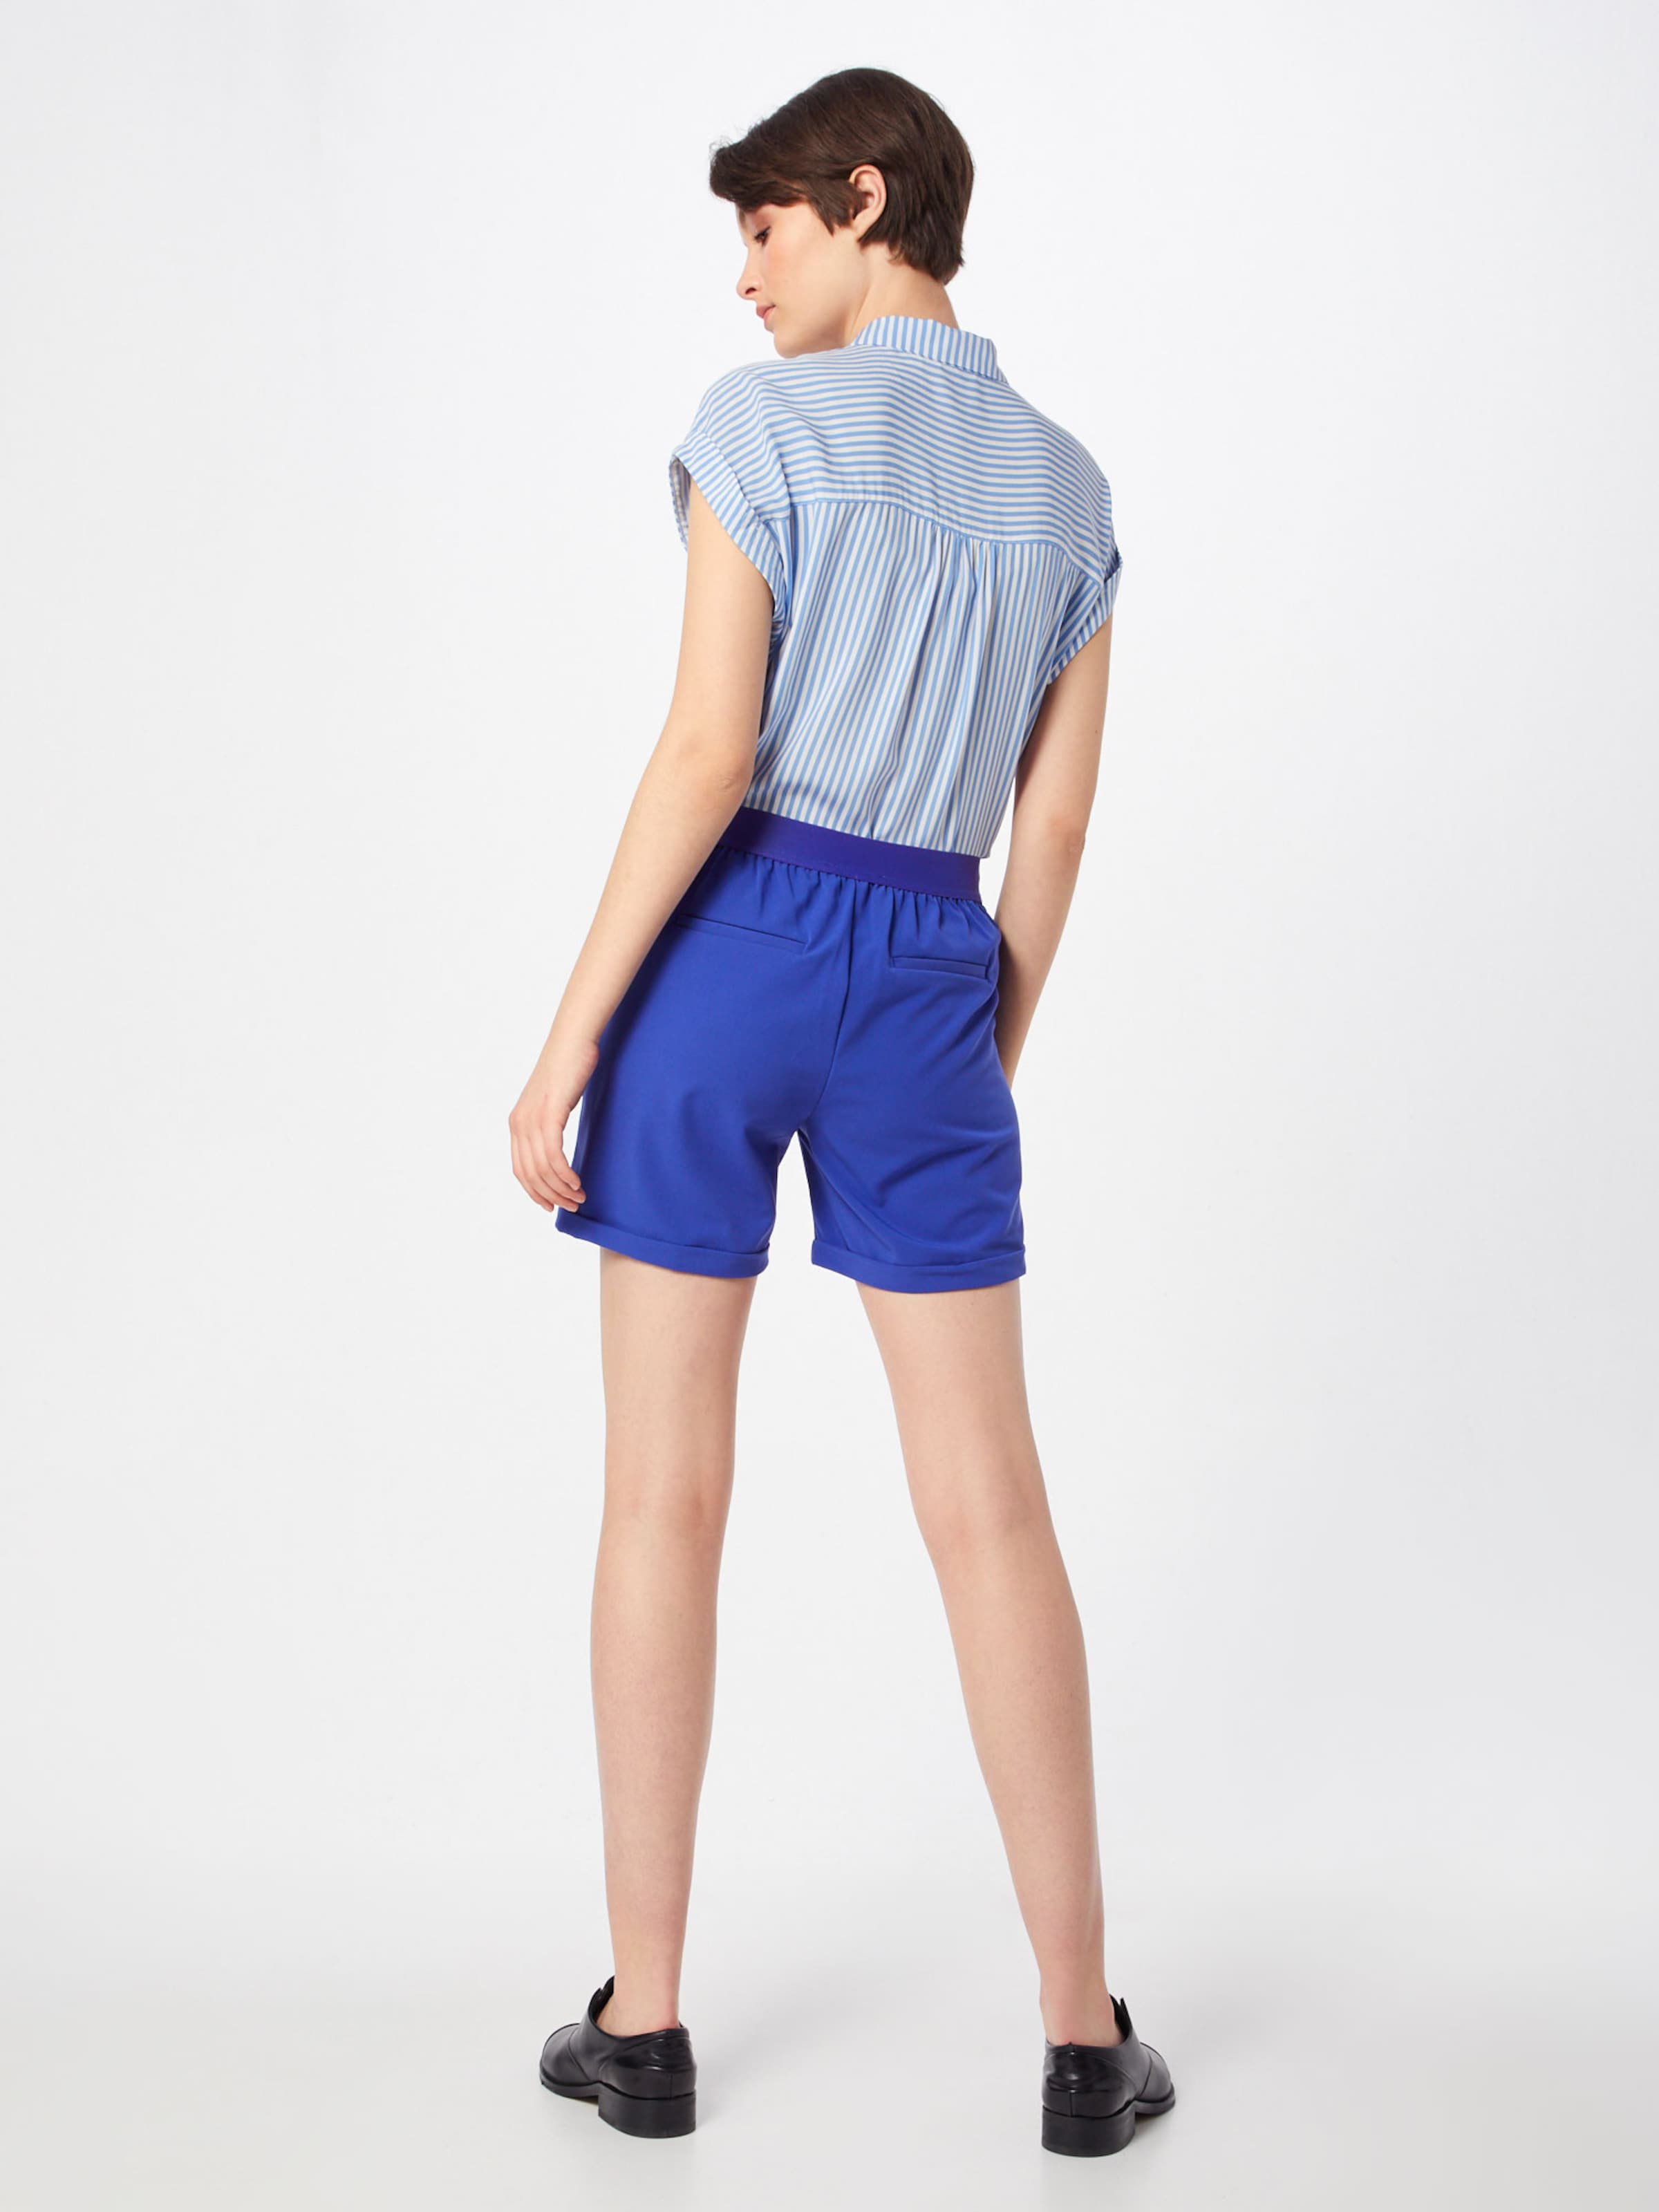 Shorts In Royalblau Object Object 'cecilie' bf7vIY6gy